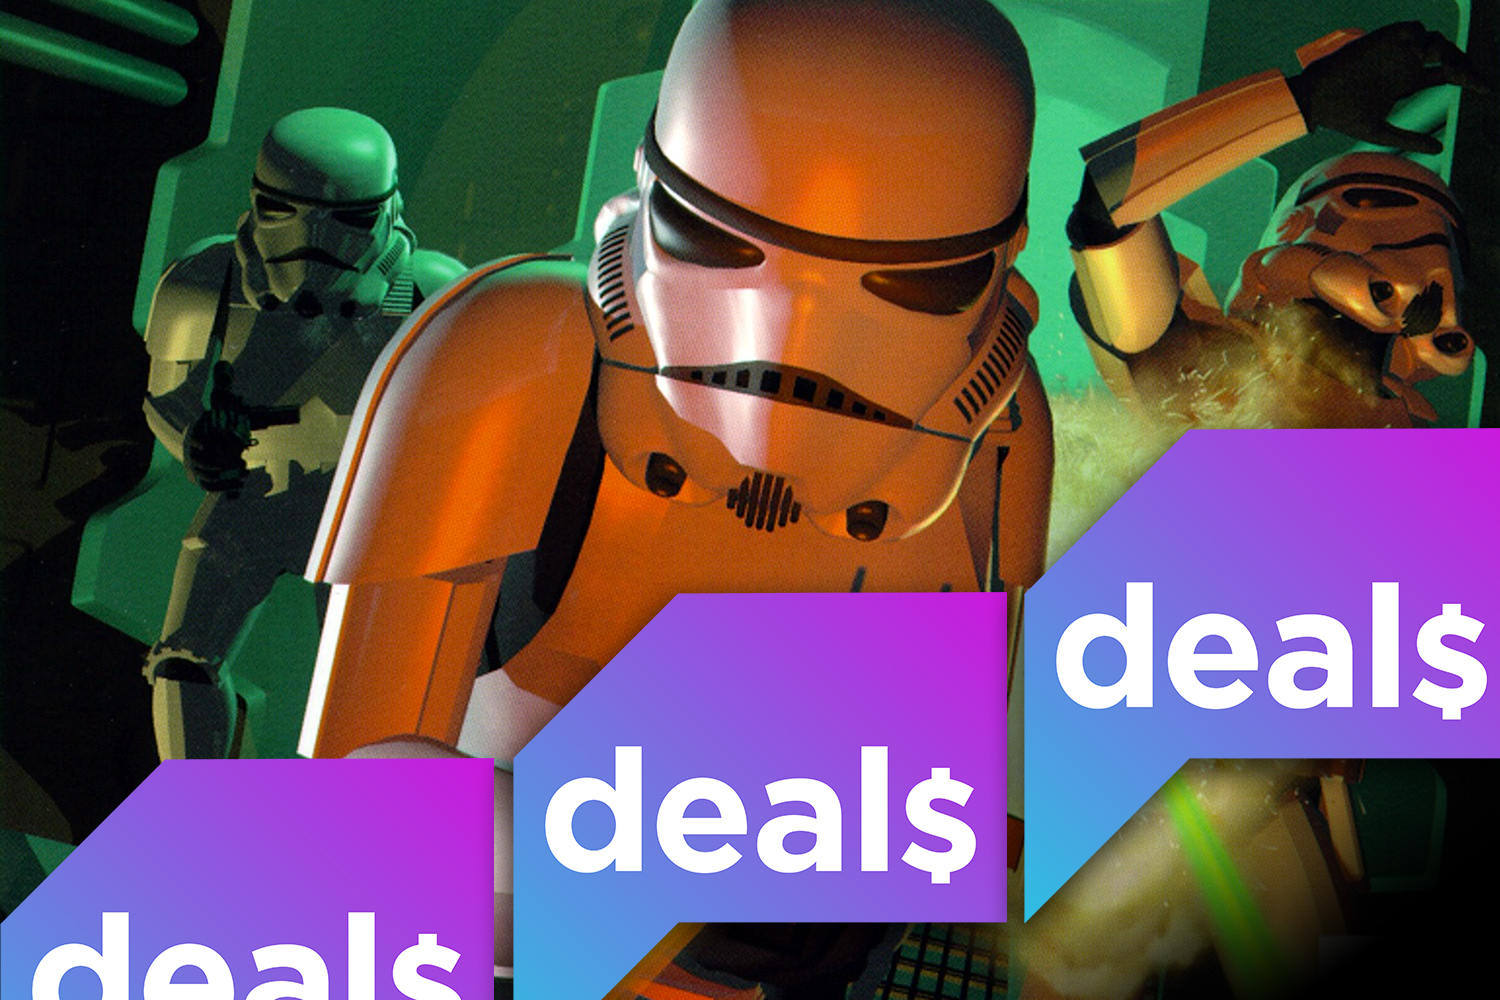 Gaming deals for Labor Day weekend